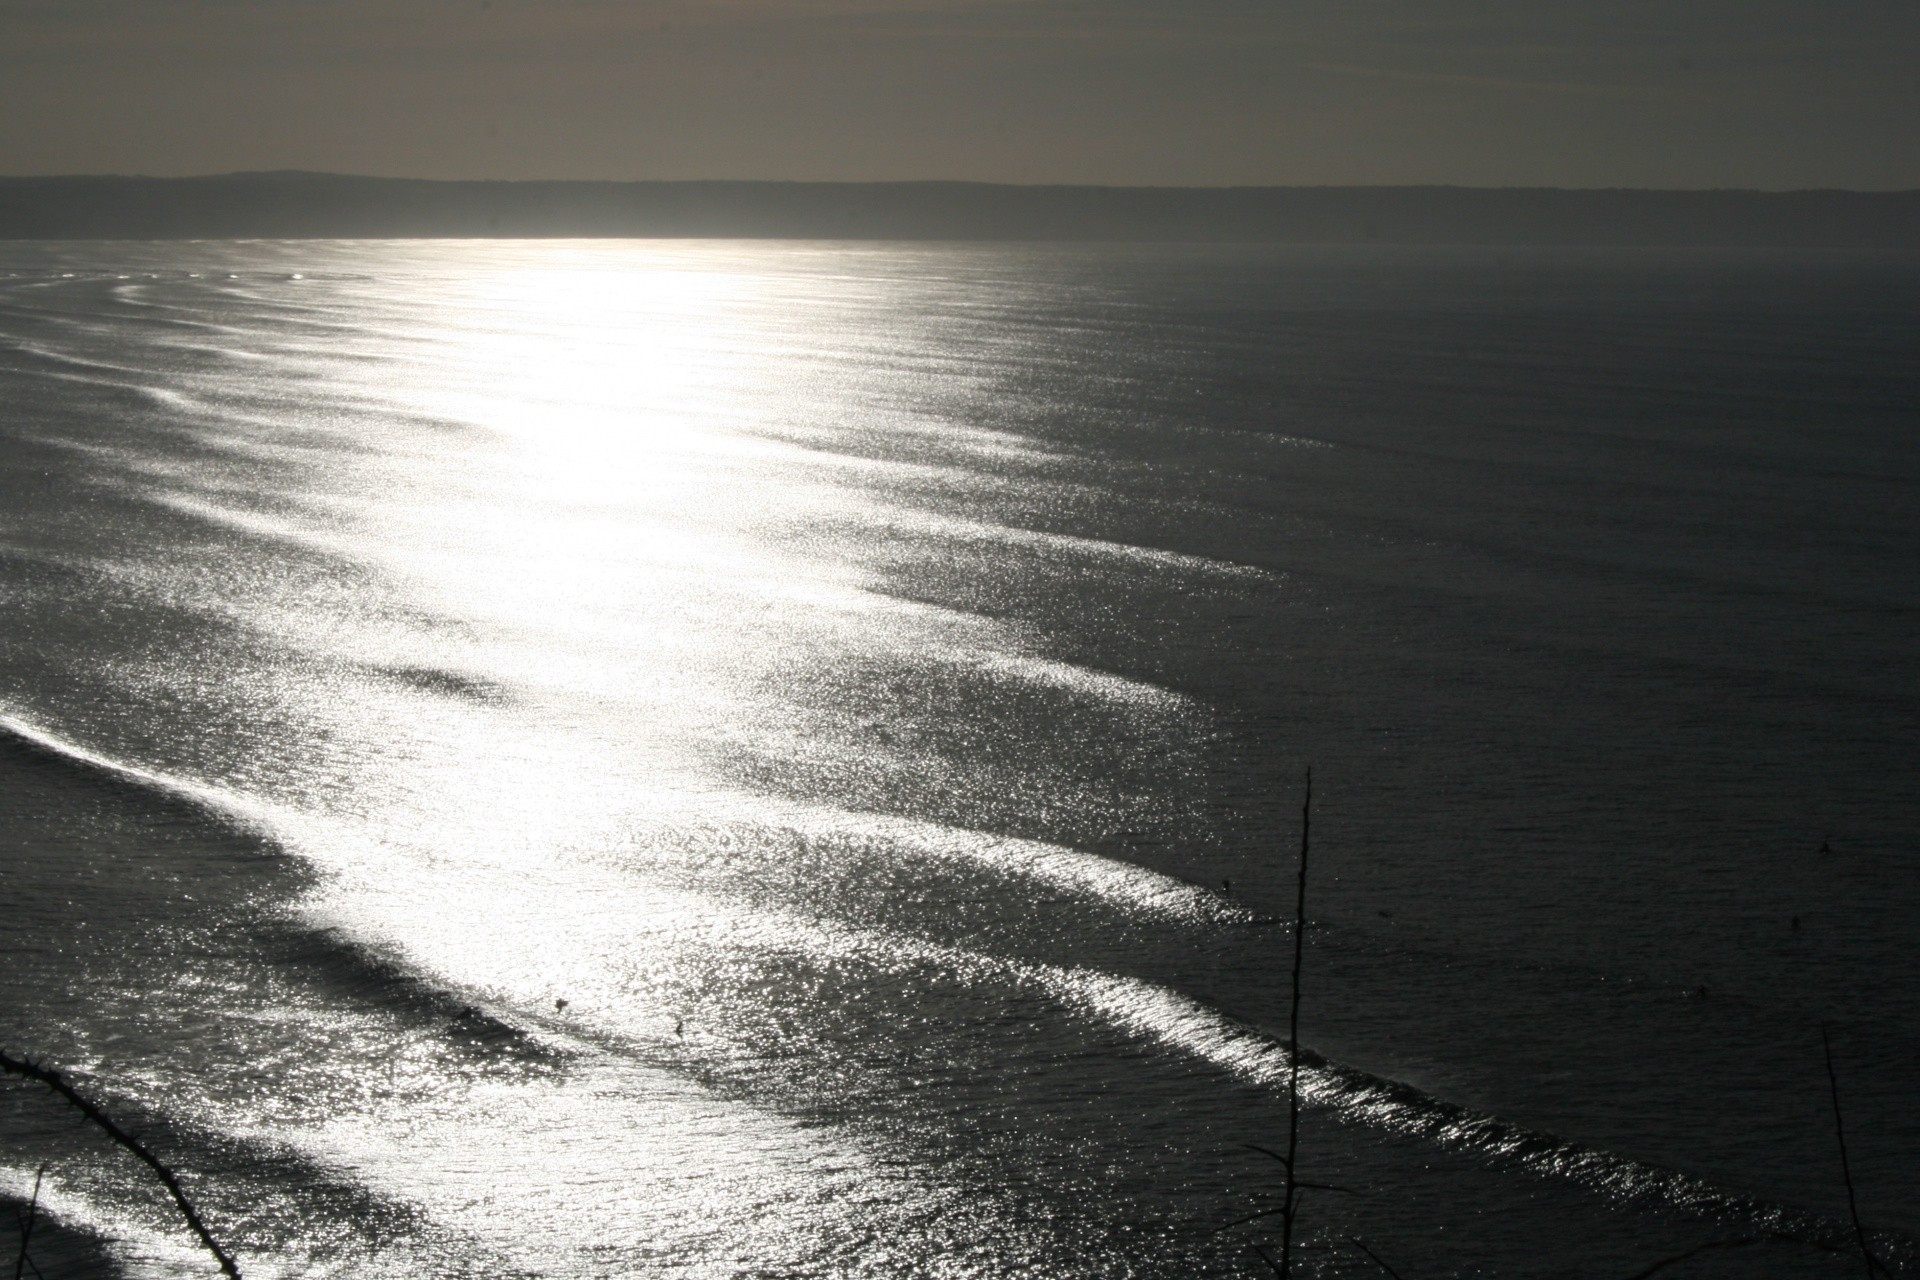 RI Baber's photo of Saunton Sands